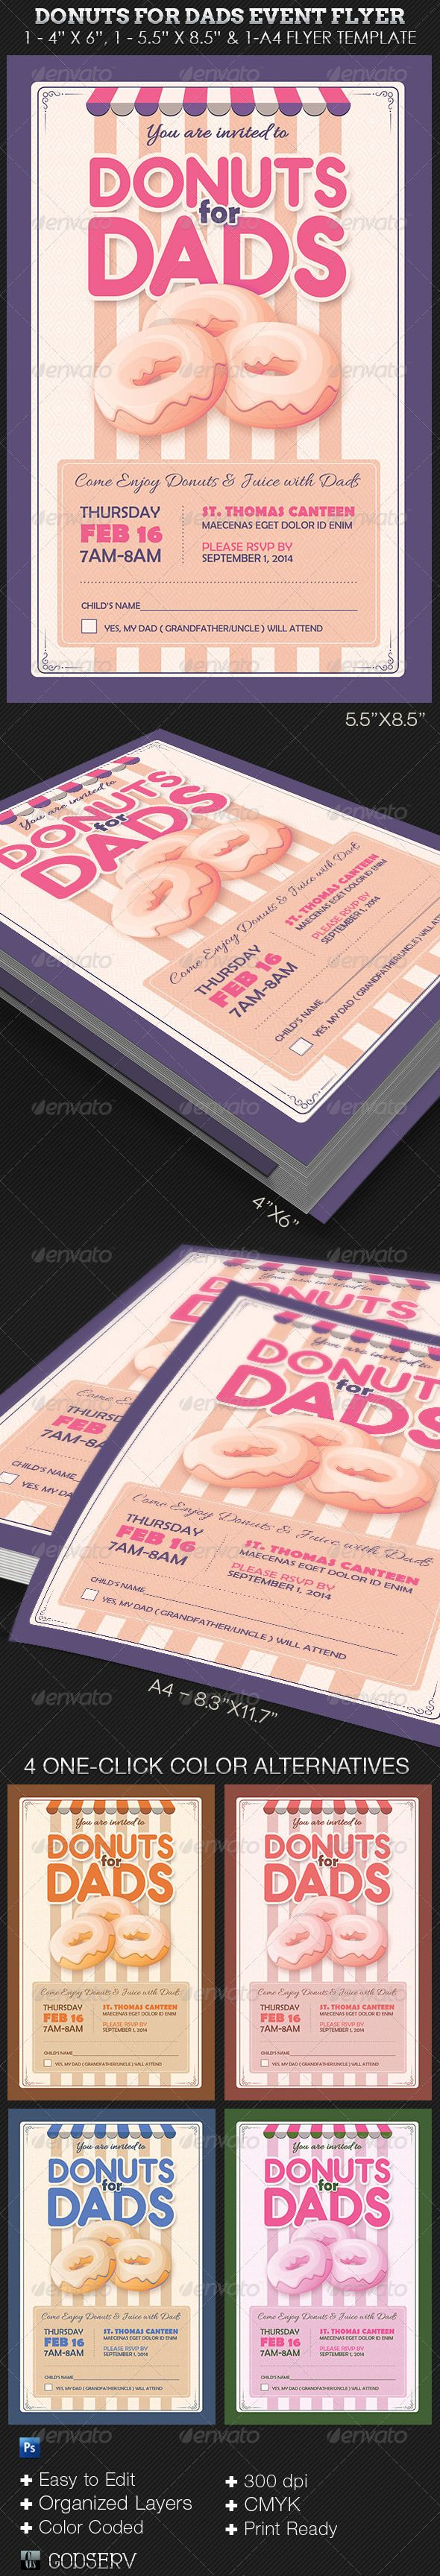 Donuts Dads Event Flyer Template — Photoshop PSD #church #pastry • Available here → https://graphicriver.net/item/donuts-dads-event-flyer-template/7603762?ref=pxcr